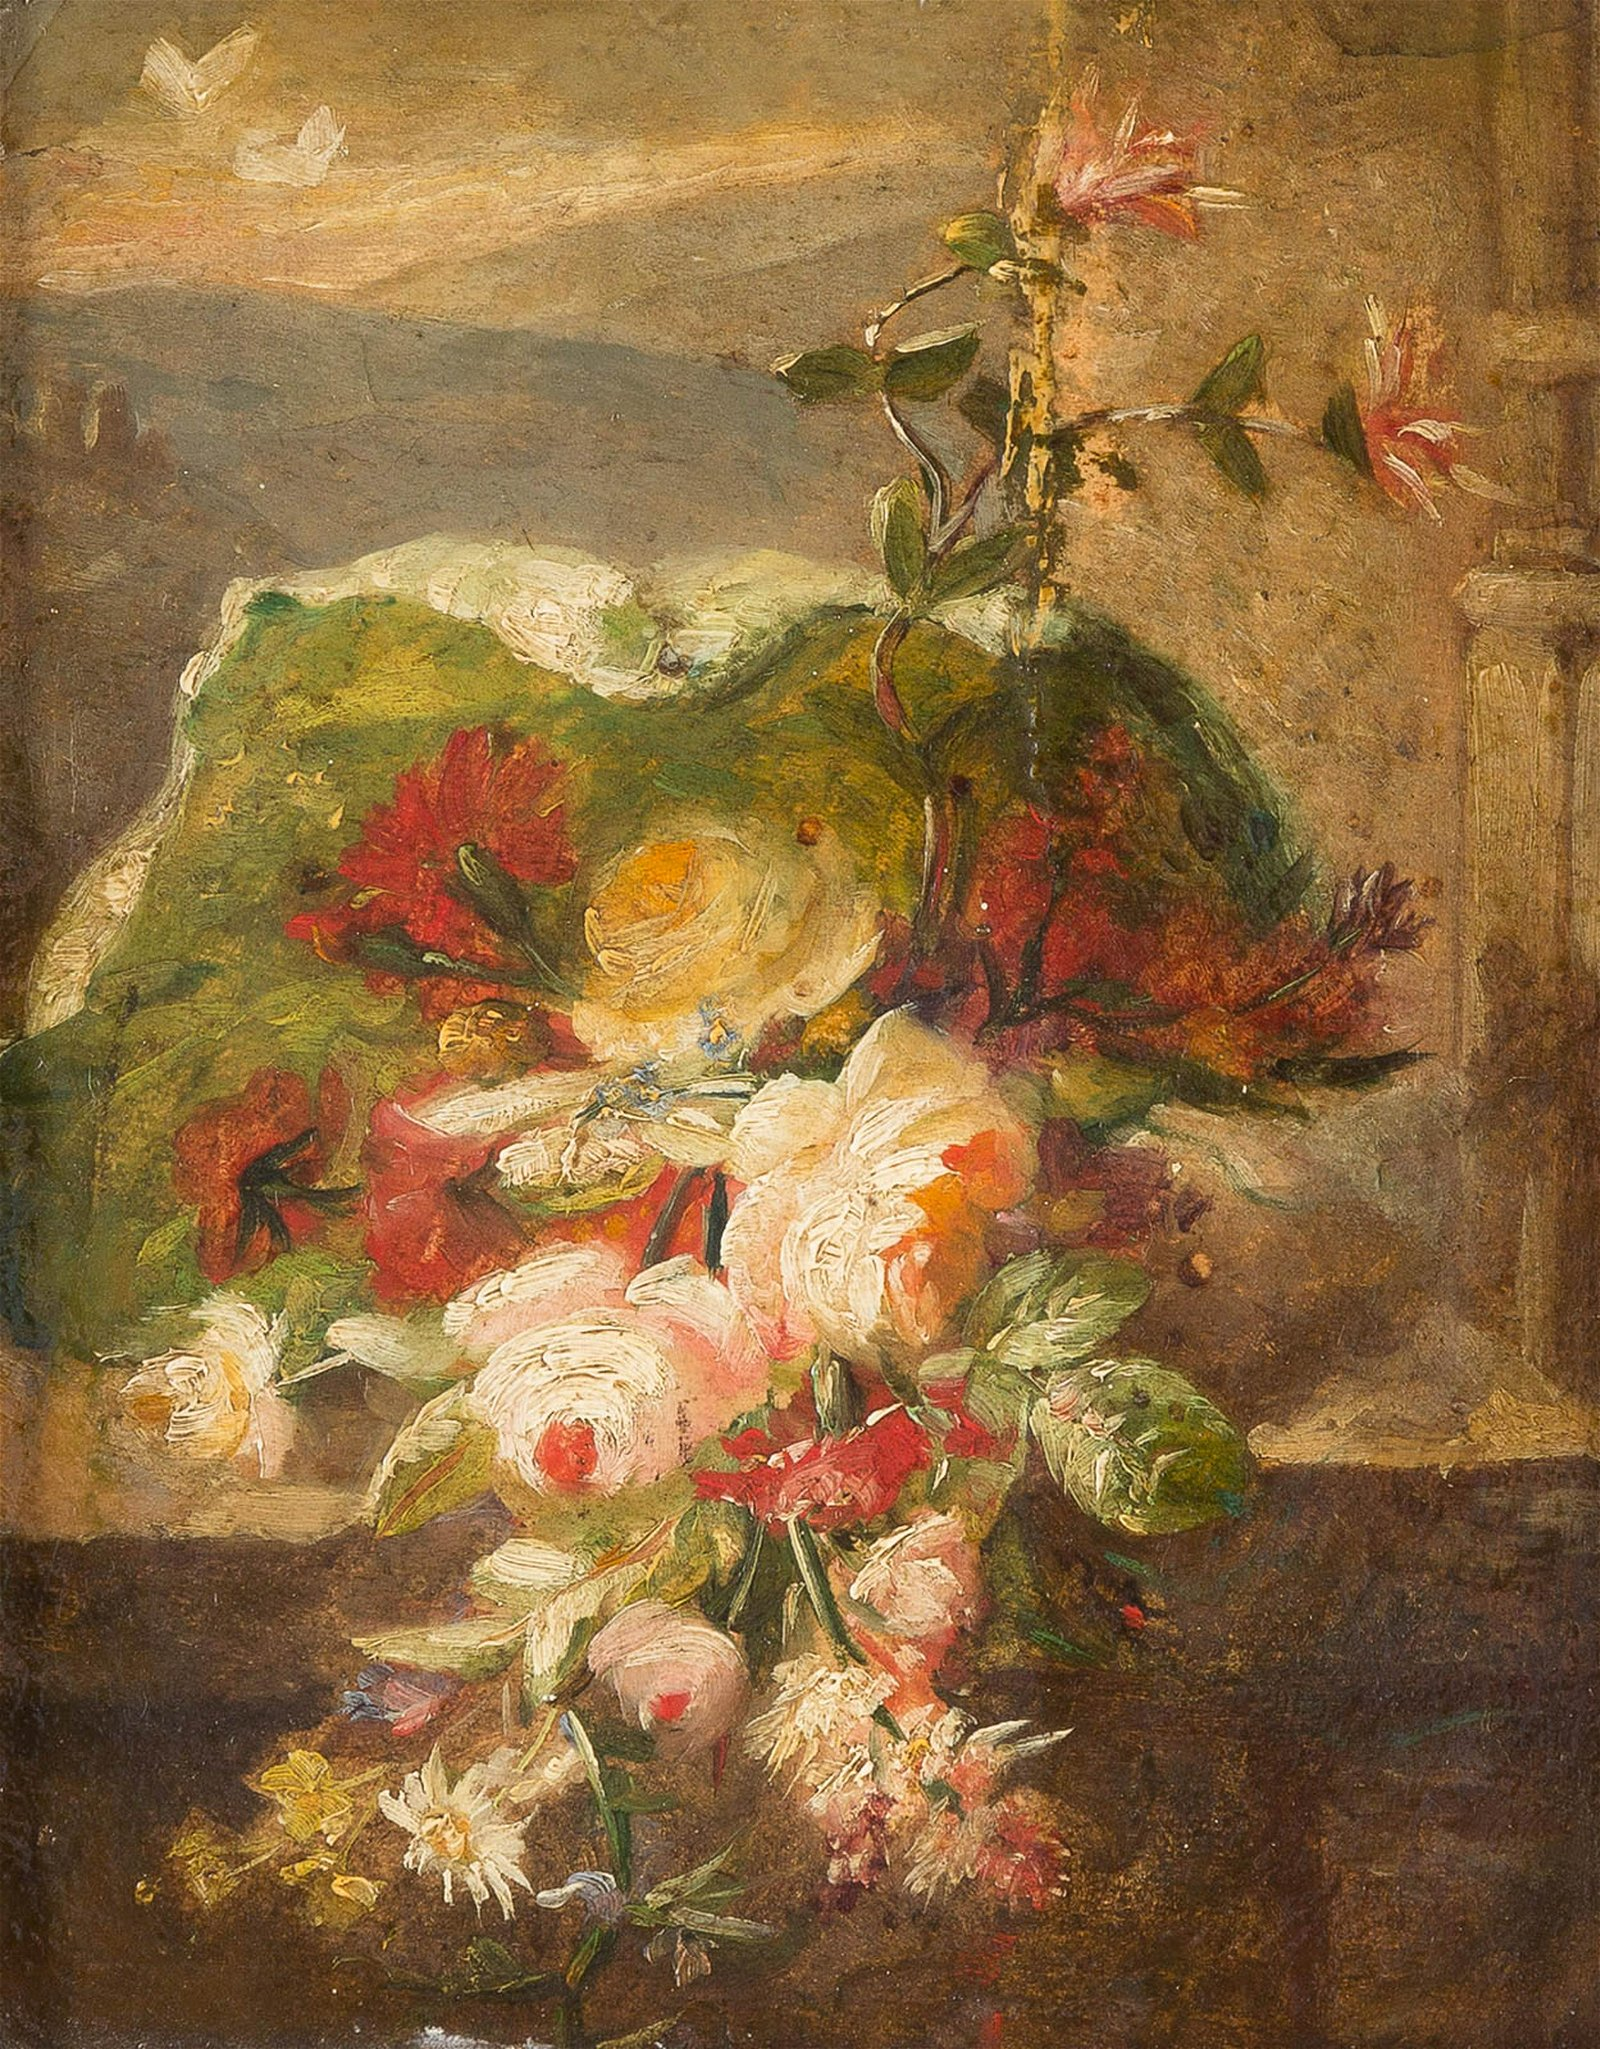 FRENCH STILL LIFE PAINTER Active 1st half 19th C.